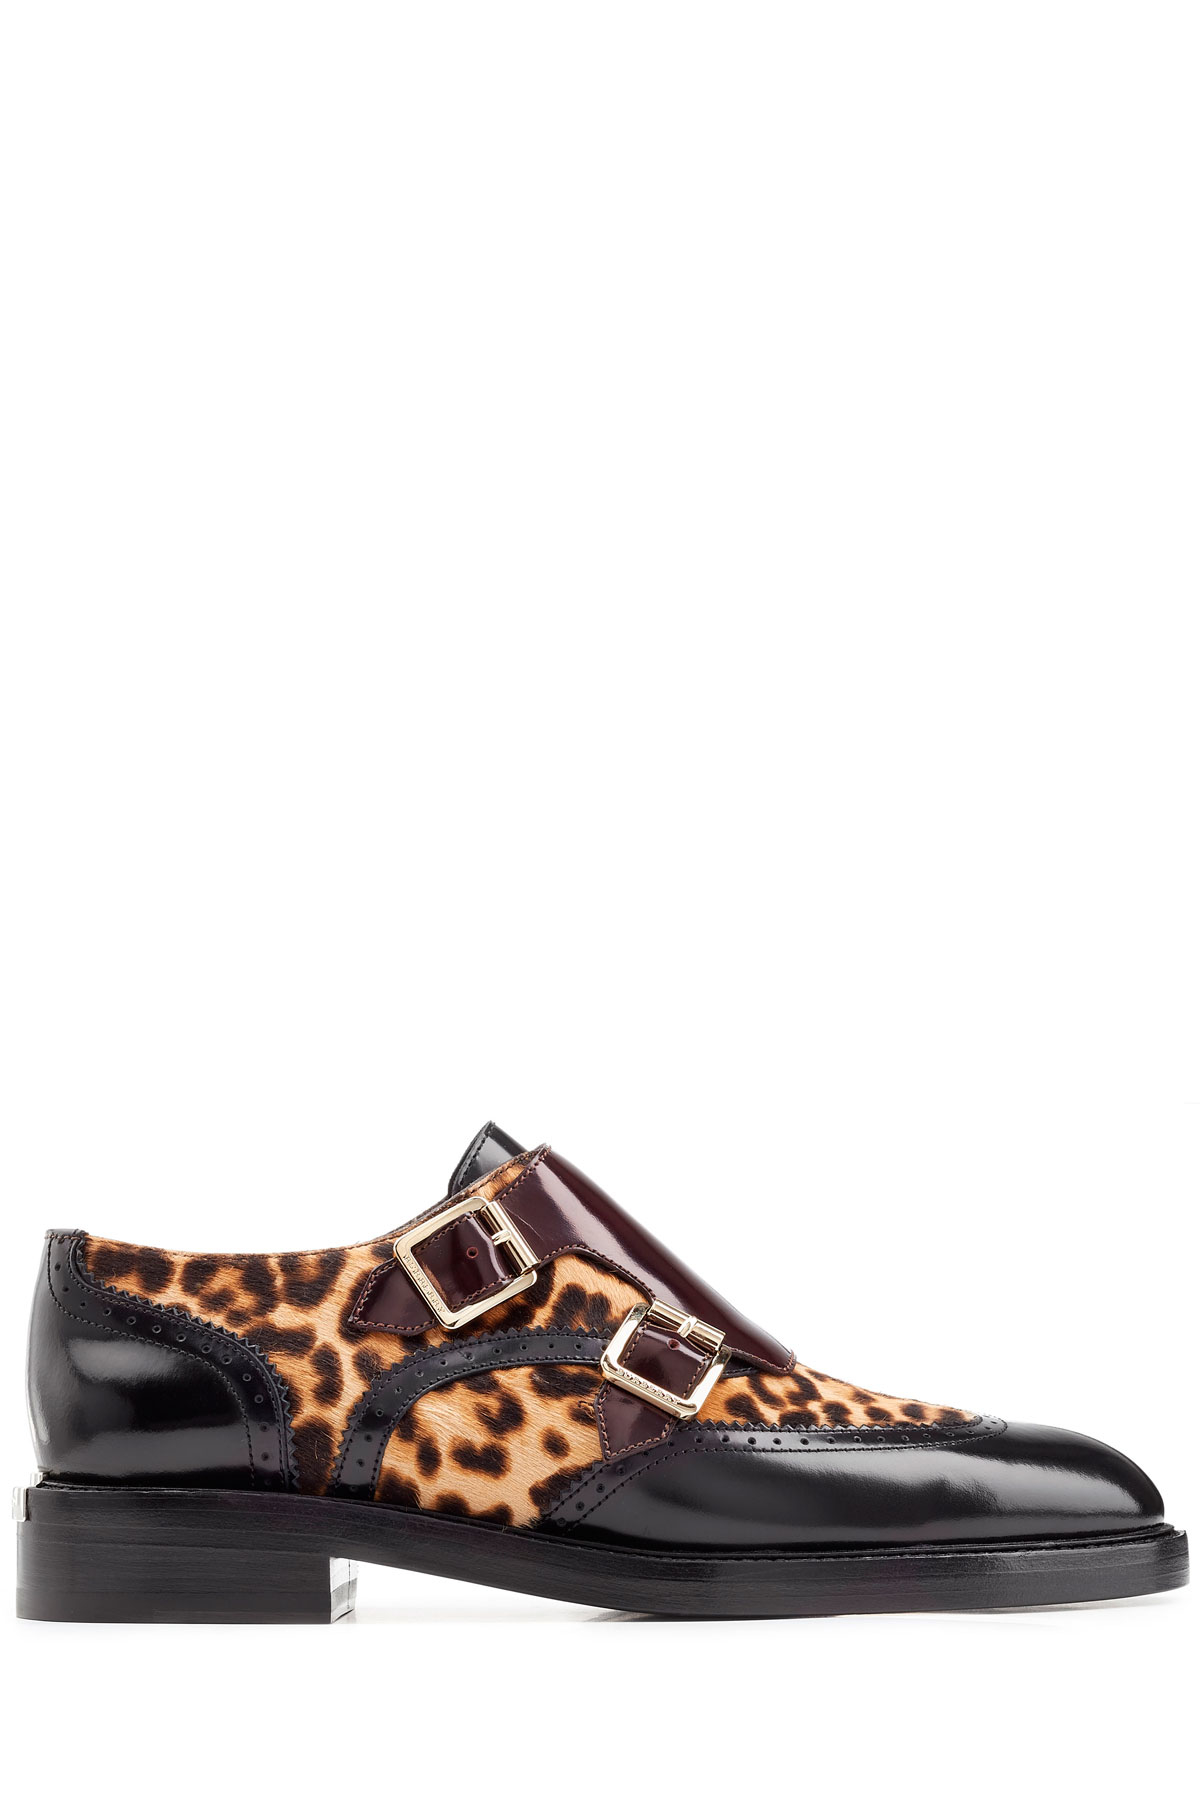 d093bfe70de Lyst - Burberry Leather Loafers With Leopard Printed Calf Hair ...